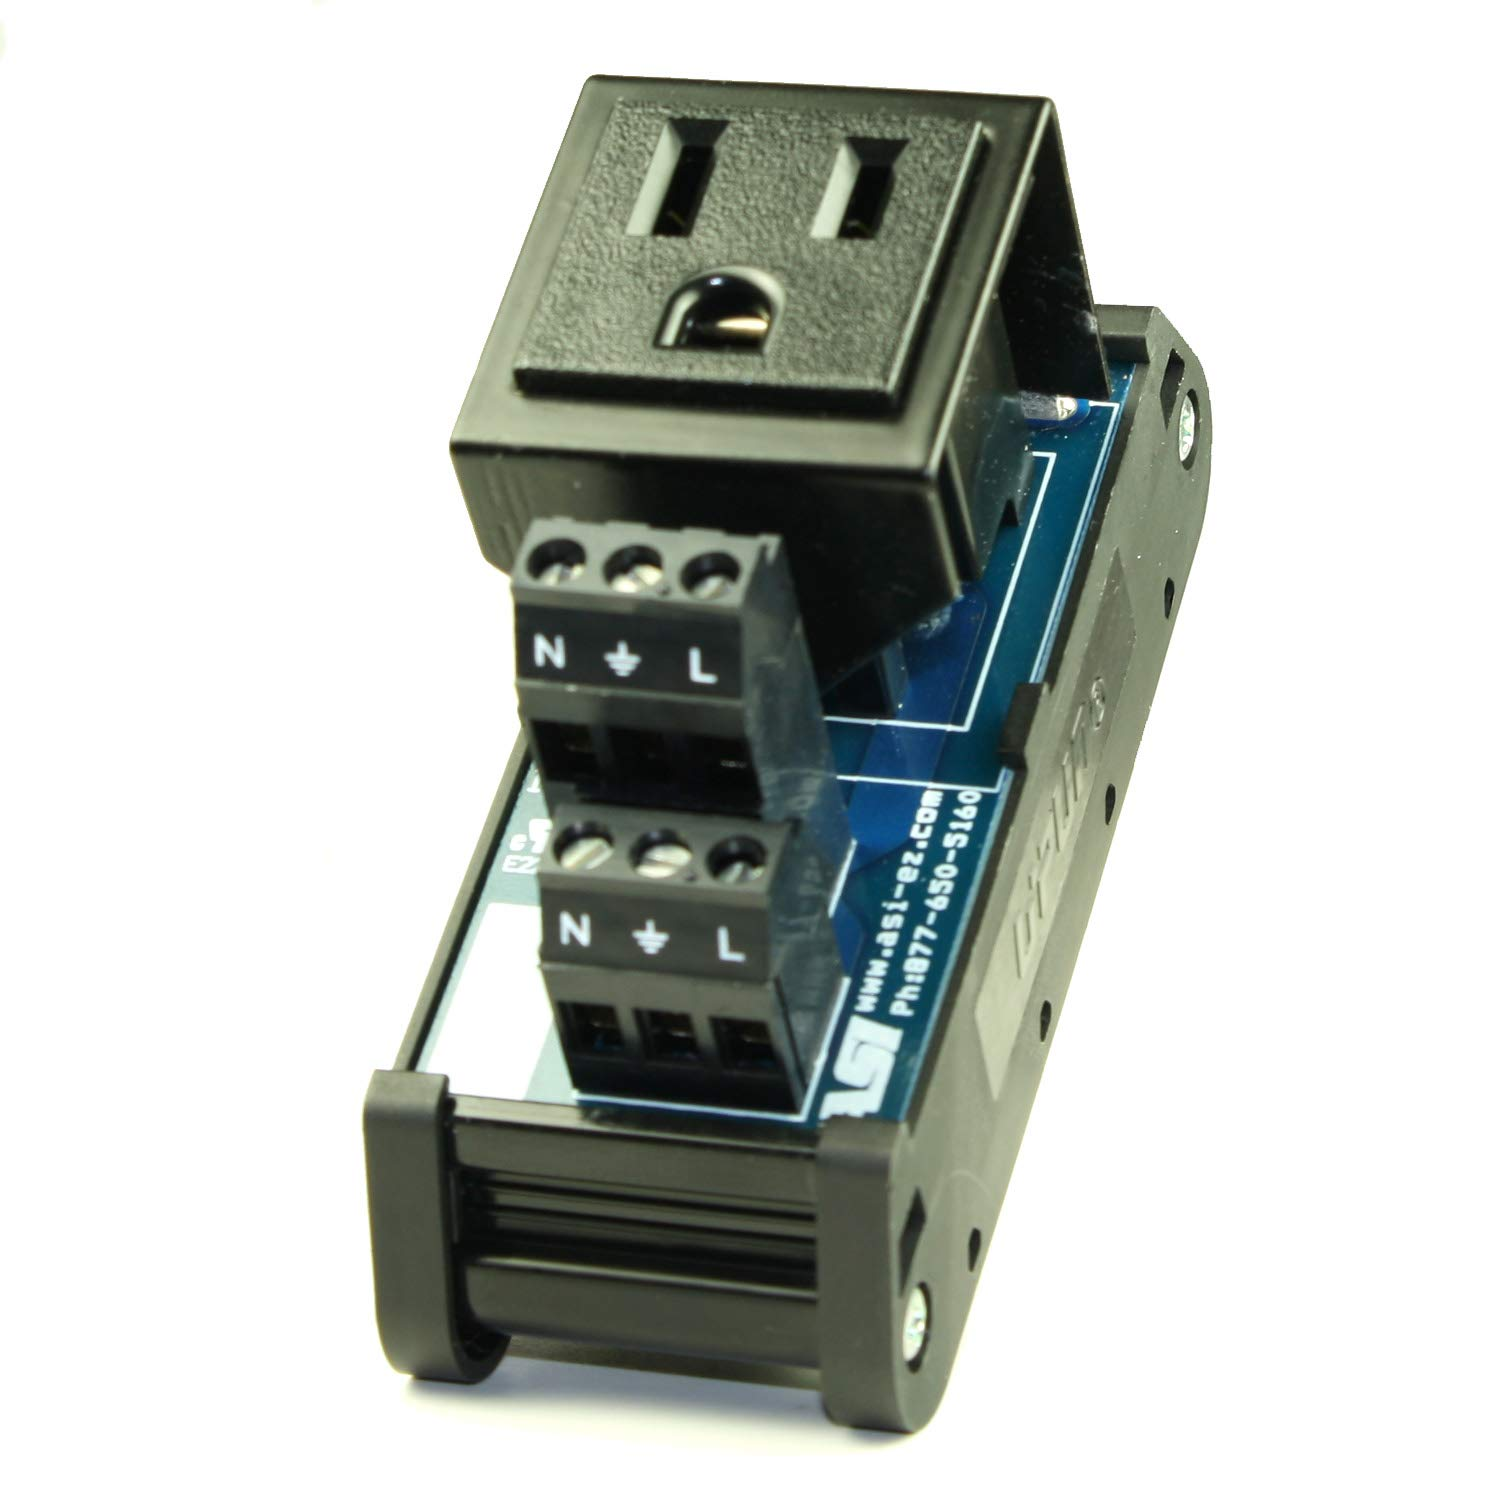 ASI 10000 26 to 12 AWG IMRC10 DIN Rail Mount Interface Module 10 Position Ribbon Cable to Terminal Blocks Flat Ribbon Cable to Wire Transition 1.8 Length